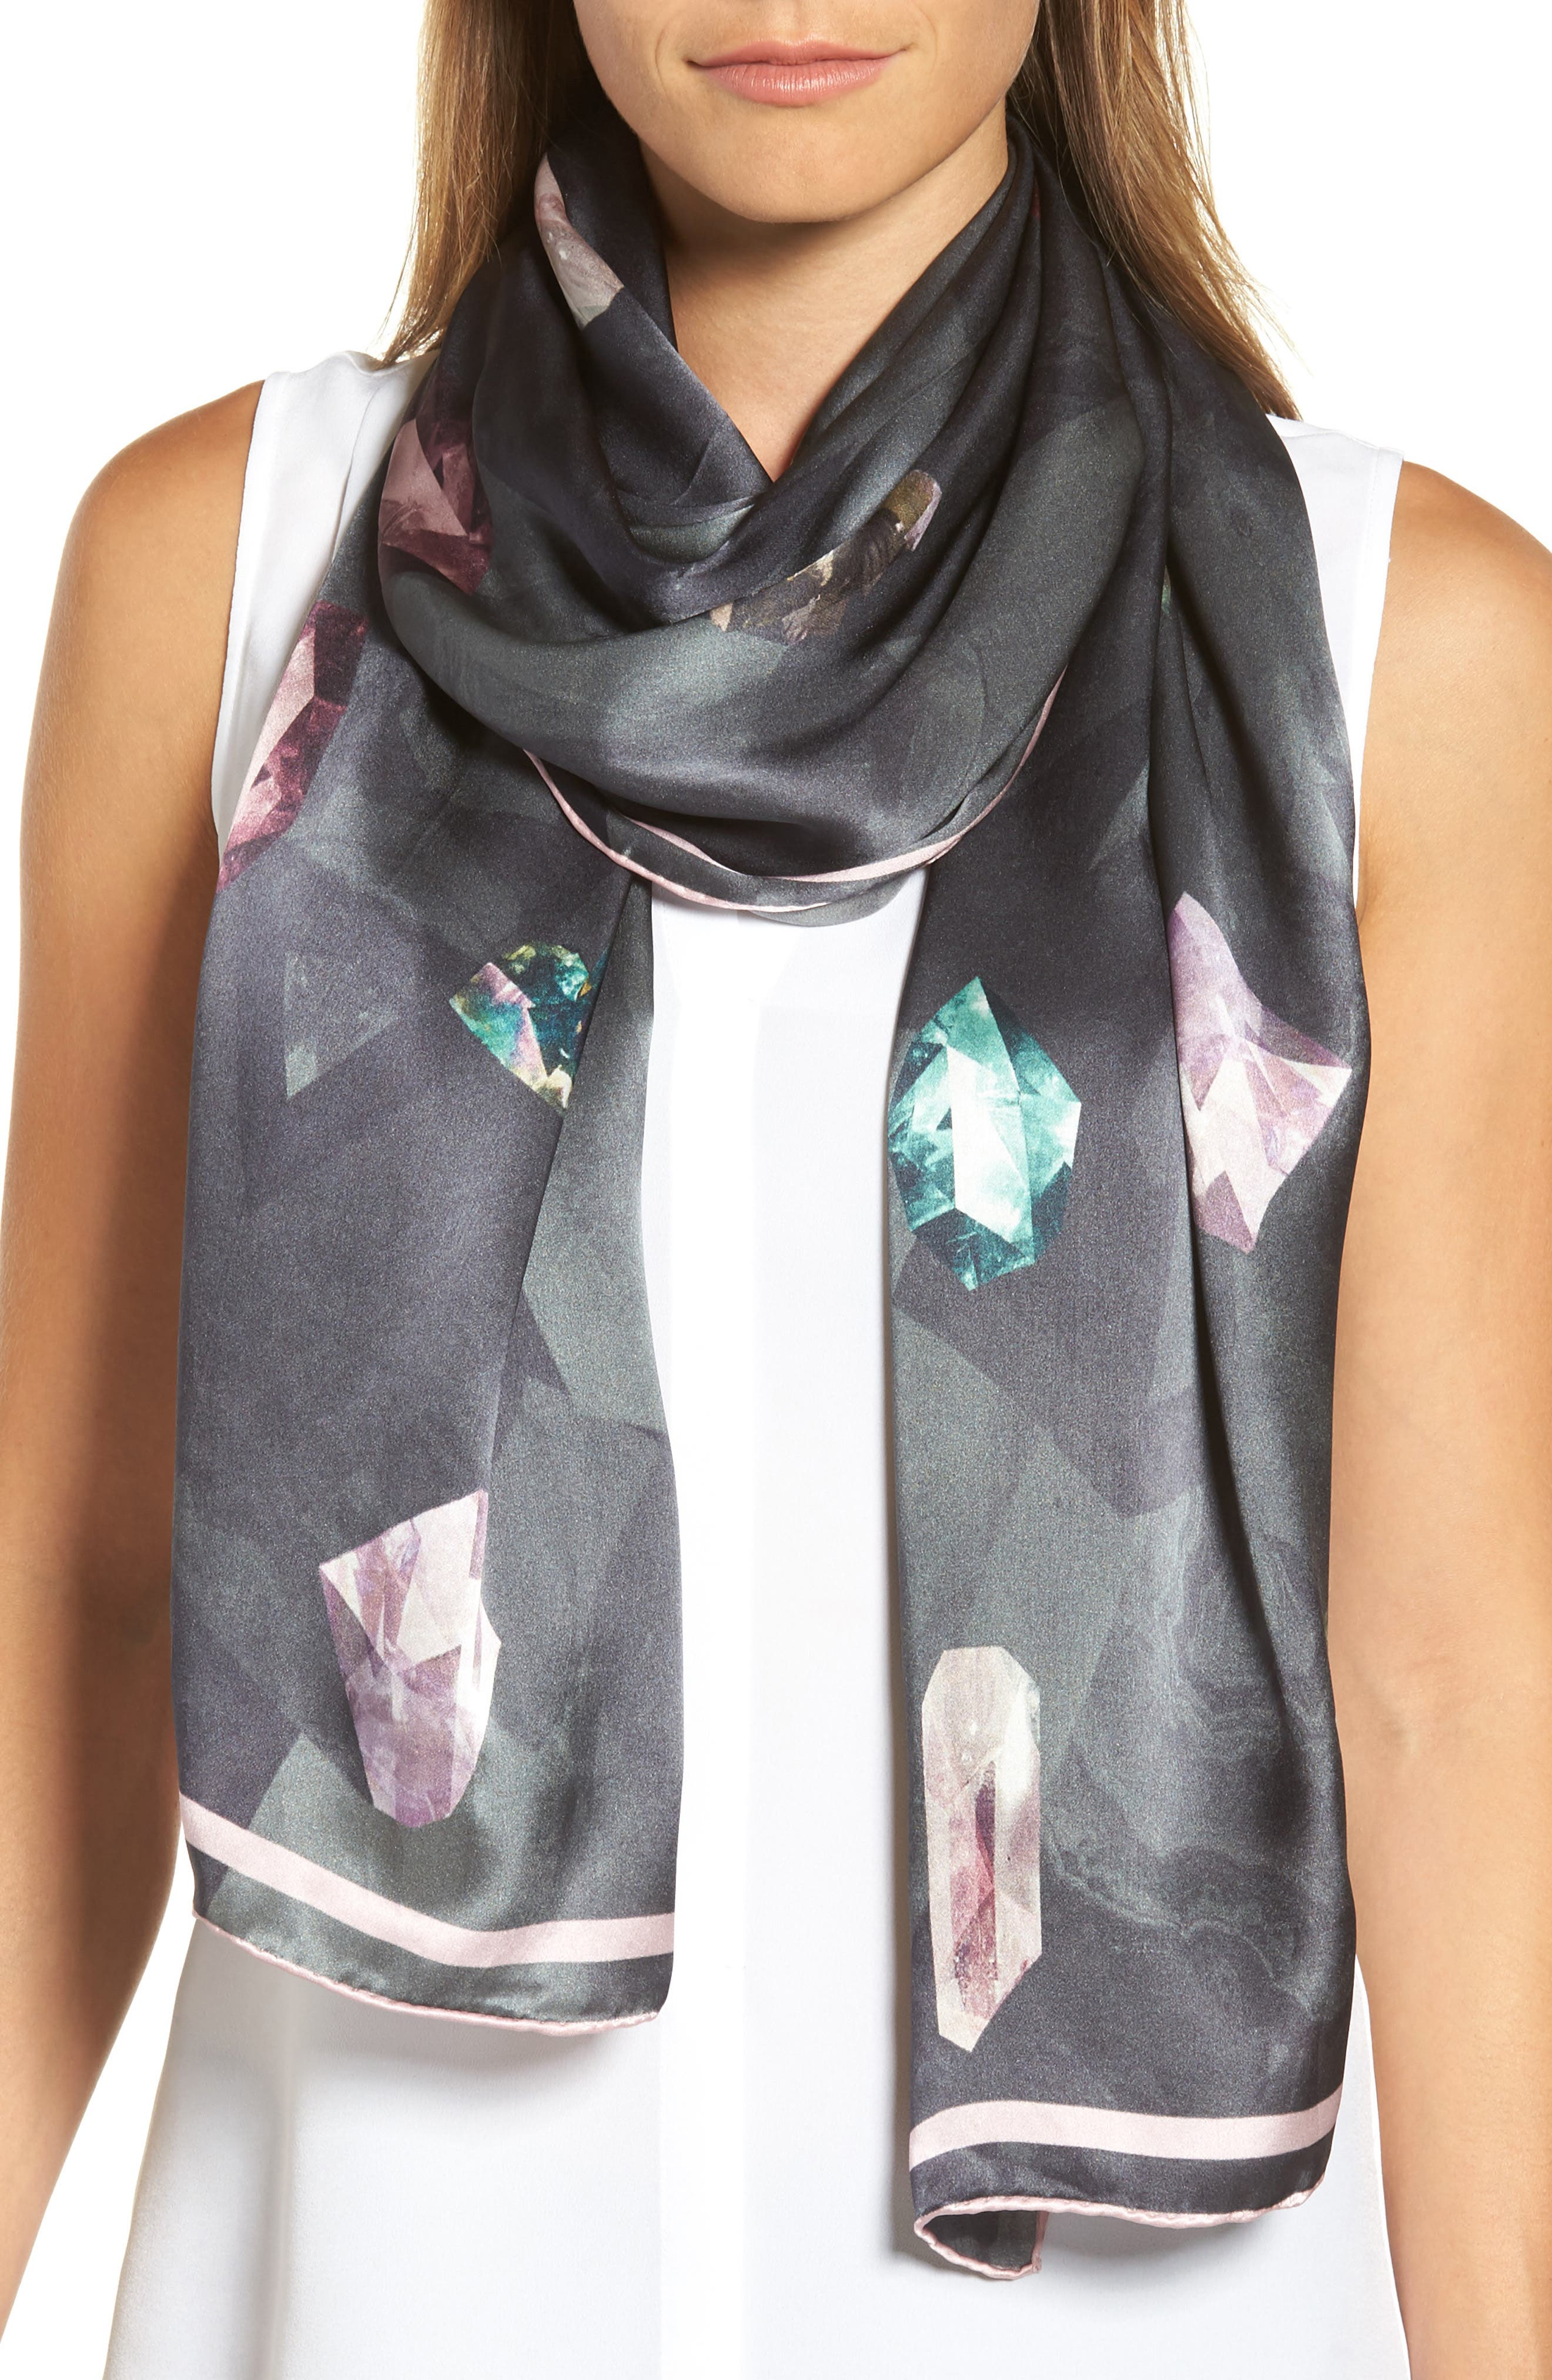 Mirrored Minerals Long Silk Scarf,                             Main thumbnail 1, color,                             Grey